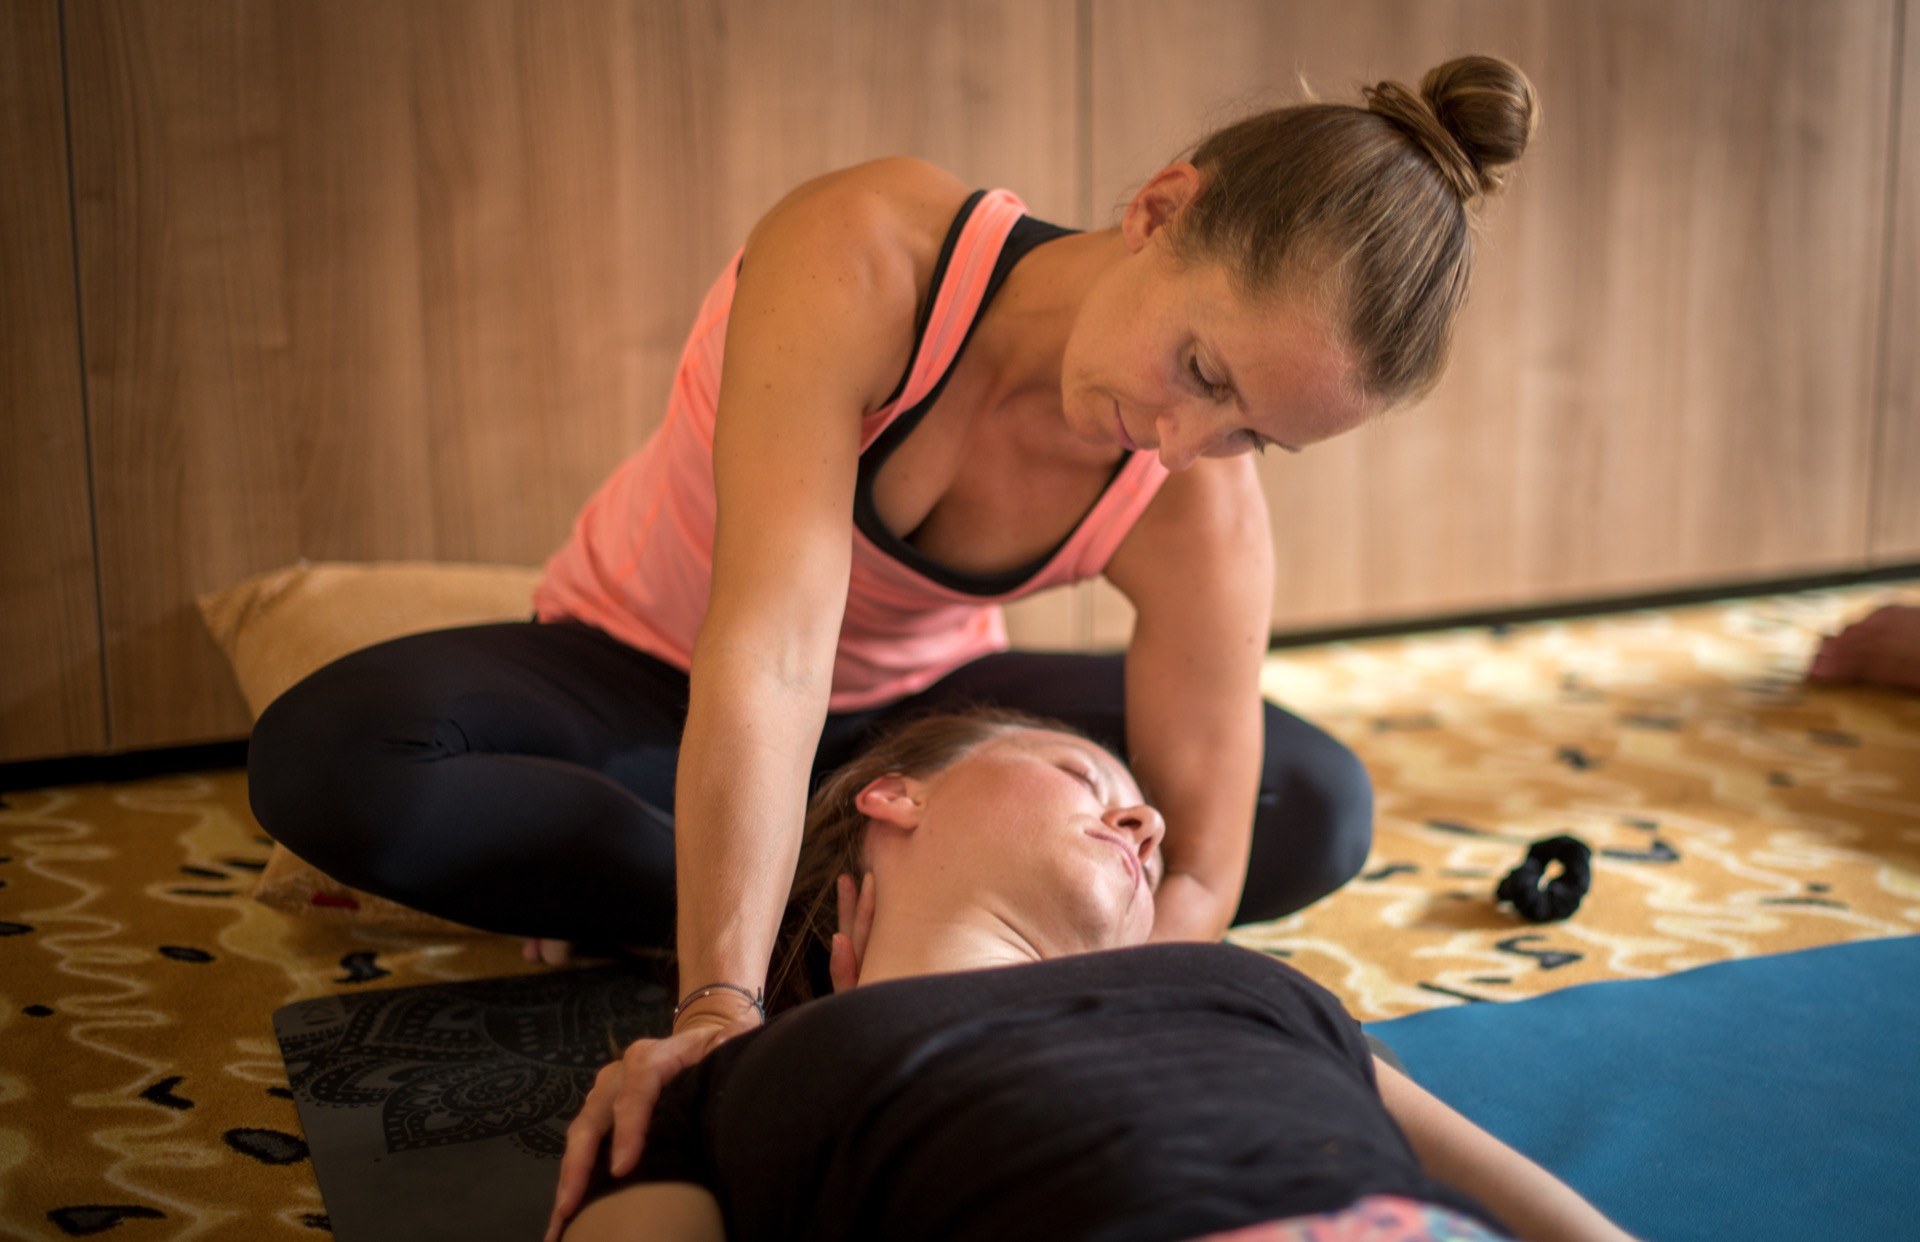 Hie-Kim-Friends-2019-Yoga-Retreat-Alina-Matis-Photography-170 - Hie Kim Yoga - Yoga Retreat - Yoga Workshops und Reisen